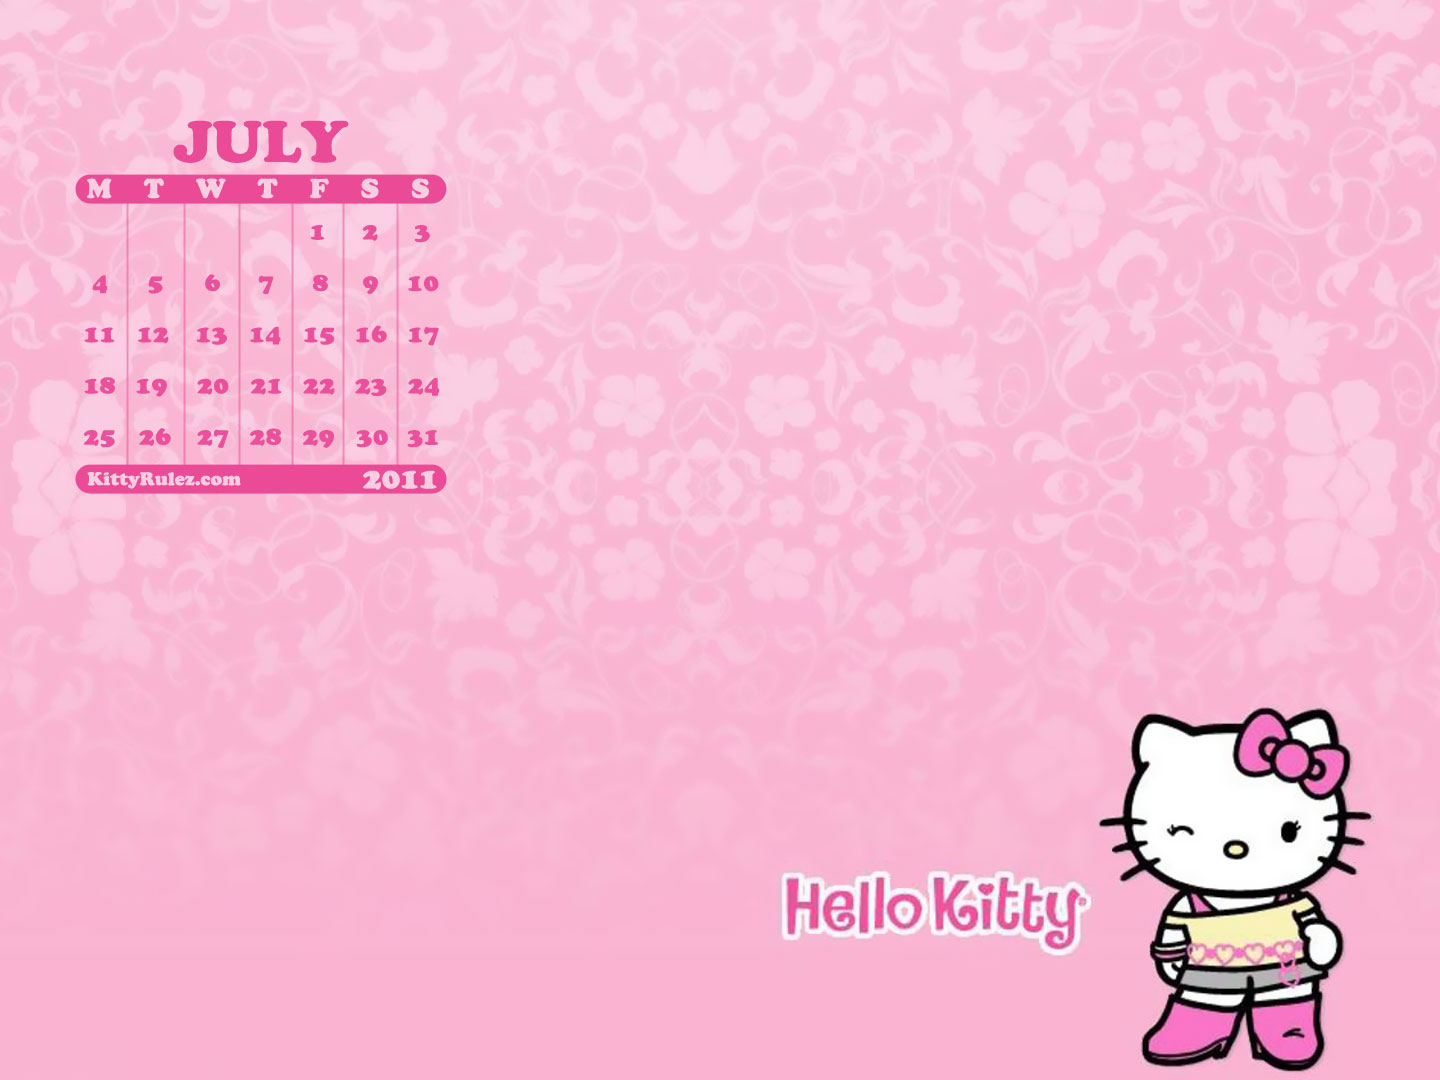 Amazing Wallpaper Hello Kitty Samsung Galaxy - hello_kitty_desktop_wallpapers_016  Snapshot_166893.jpg